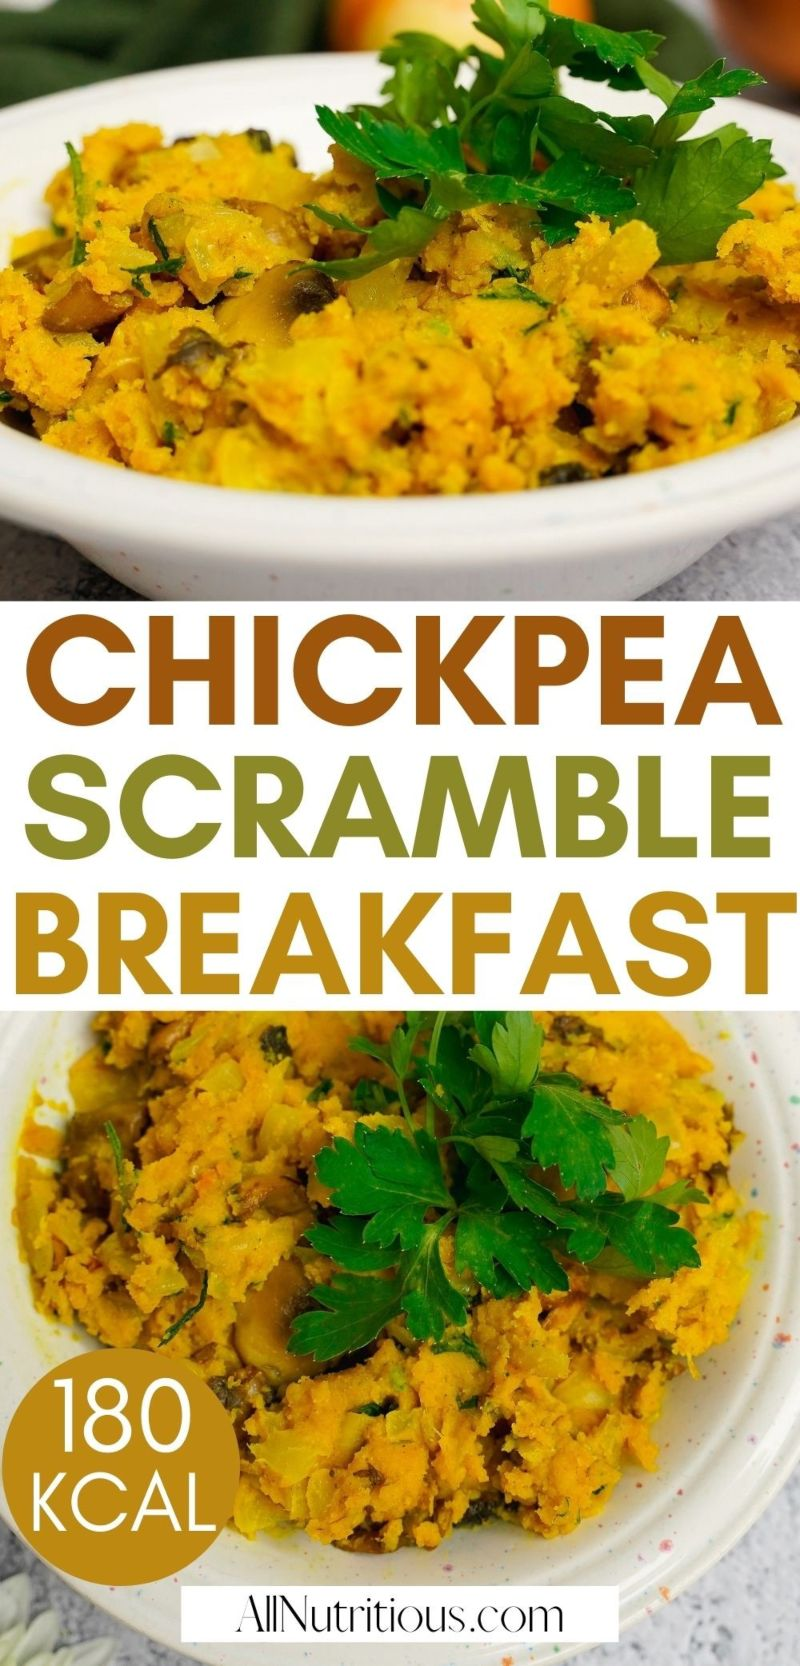 chickpea scramble breakfast